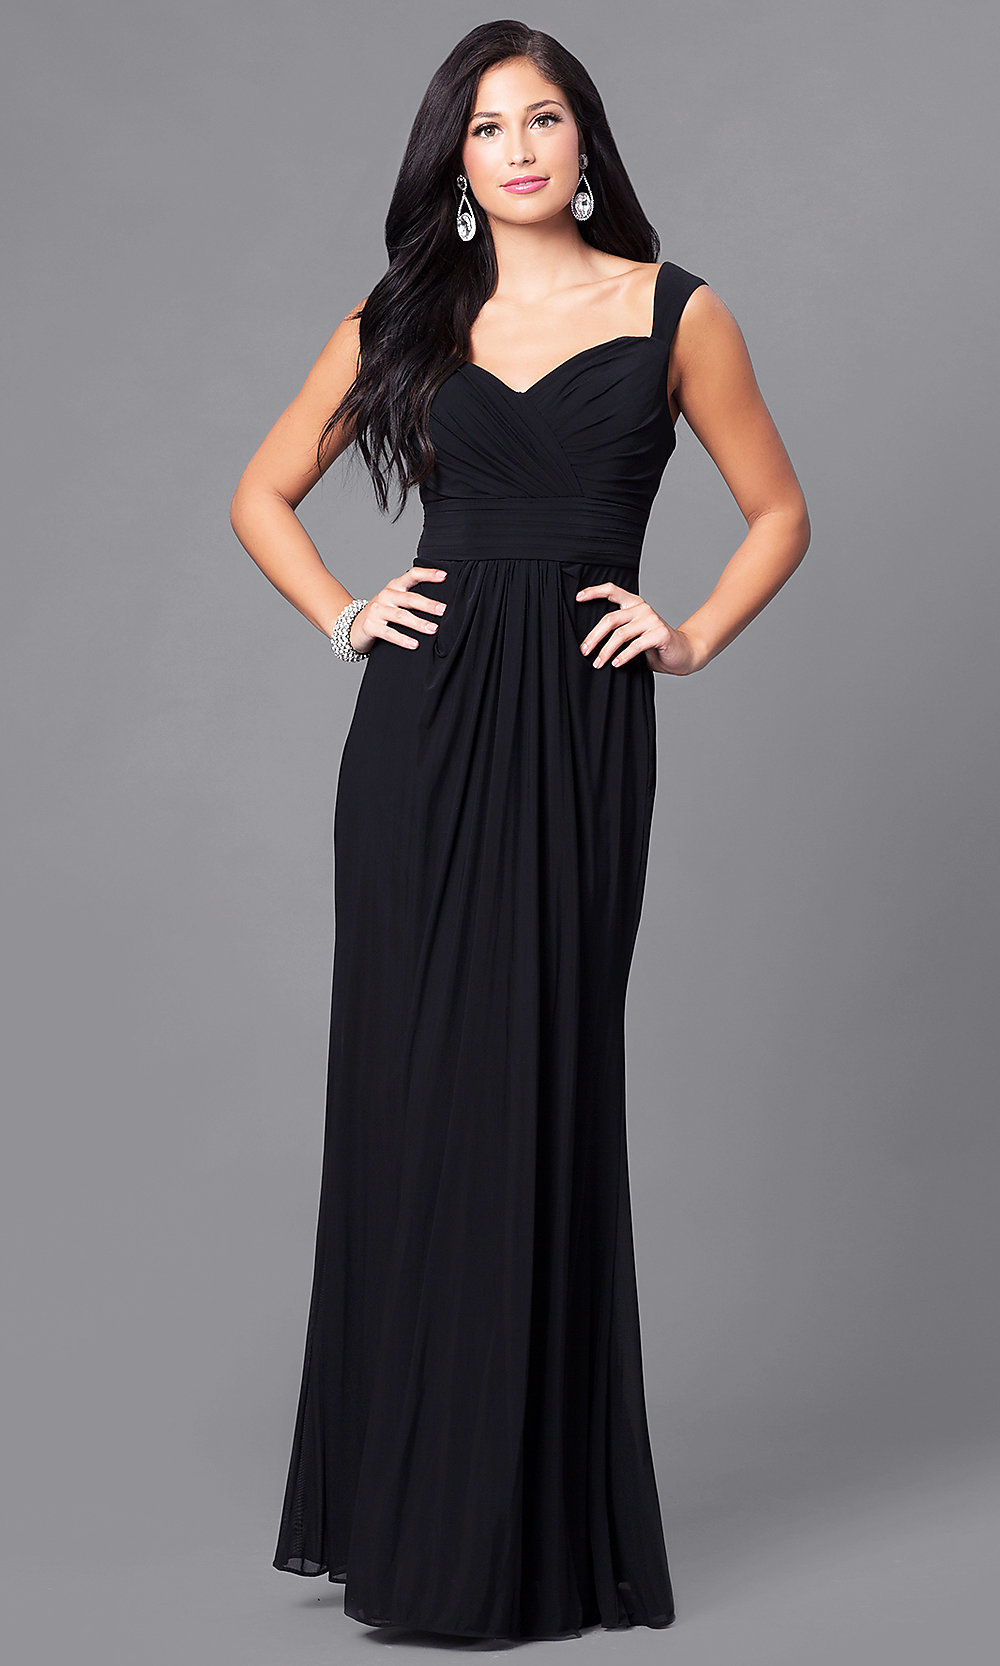 Ruched Long Sweetheart Formal Prom Dress- PromGirl